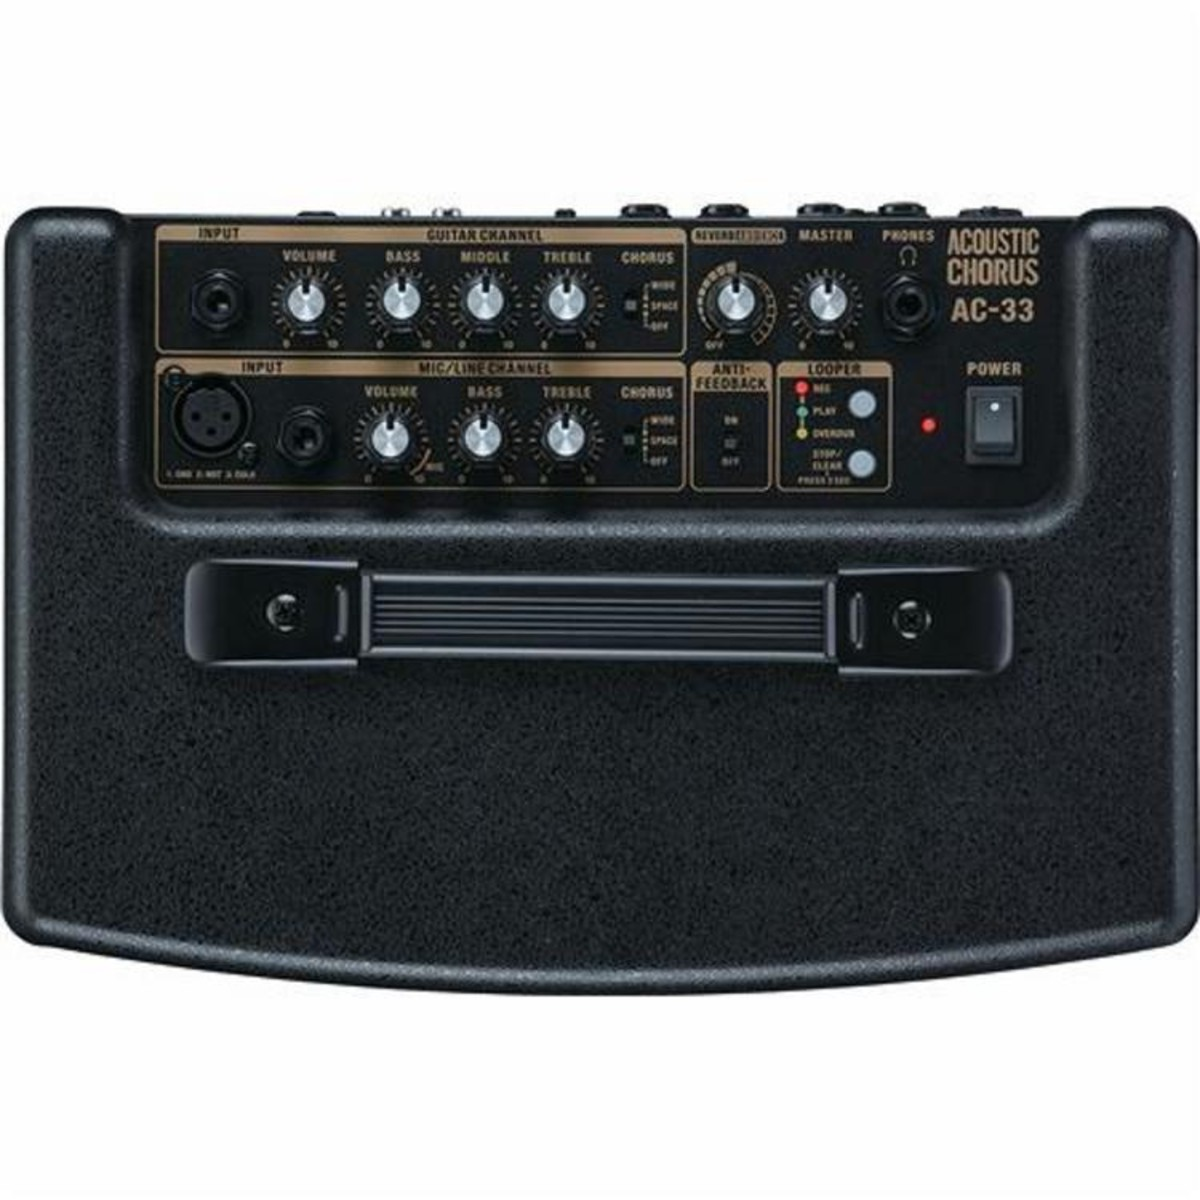 roland ac 33 portable acoustic guitar amplifier nearly new at. Black Bedroom Furniture Sets. Home Design Ideas